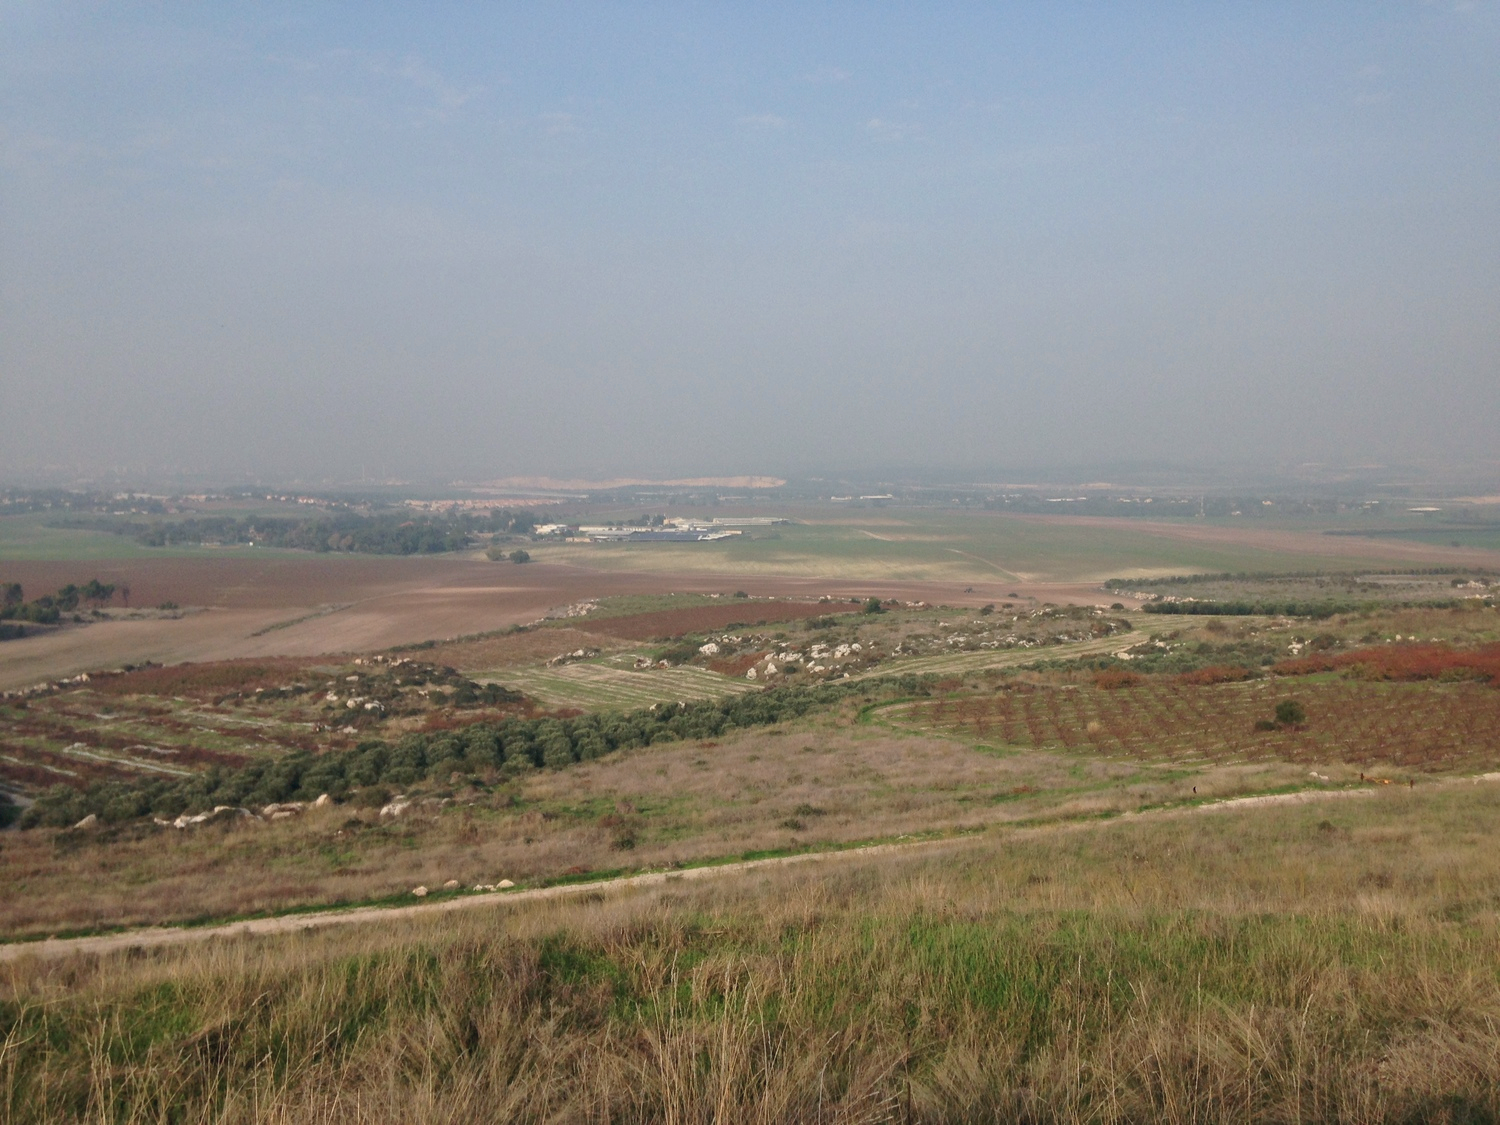 Gezer in the distance, seen from the top of Tel Gezer.